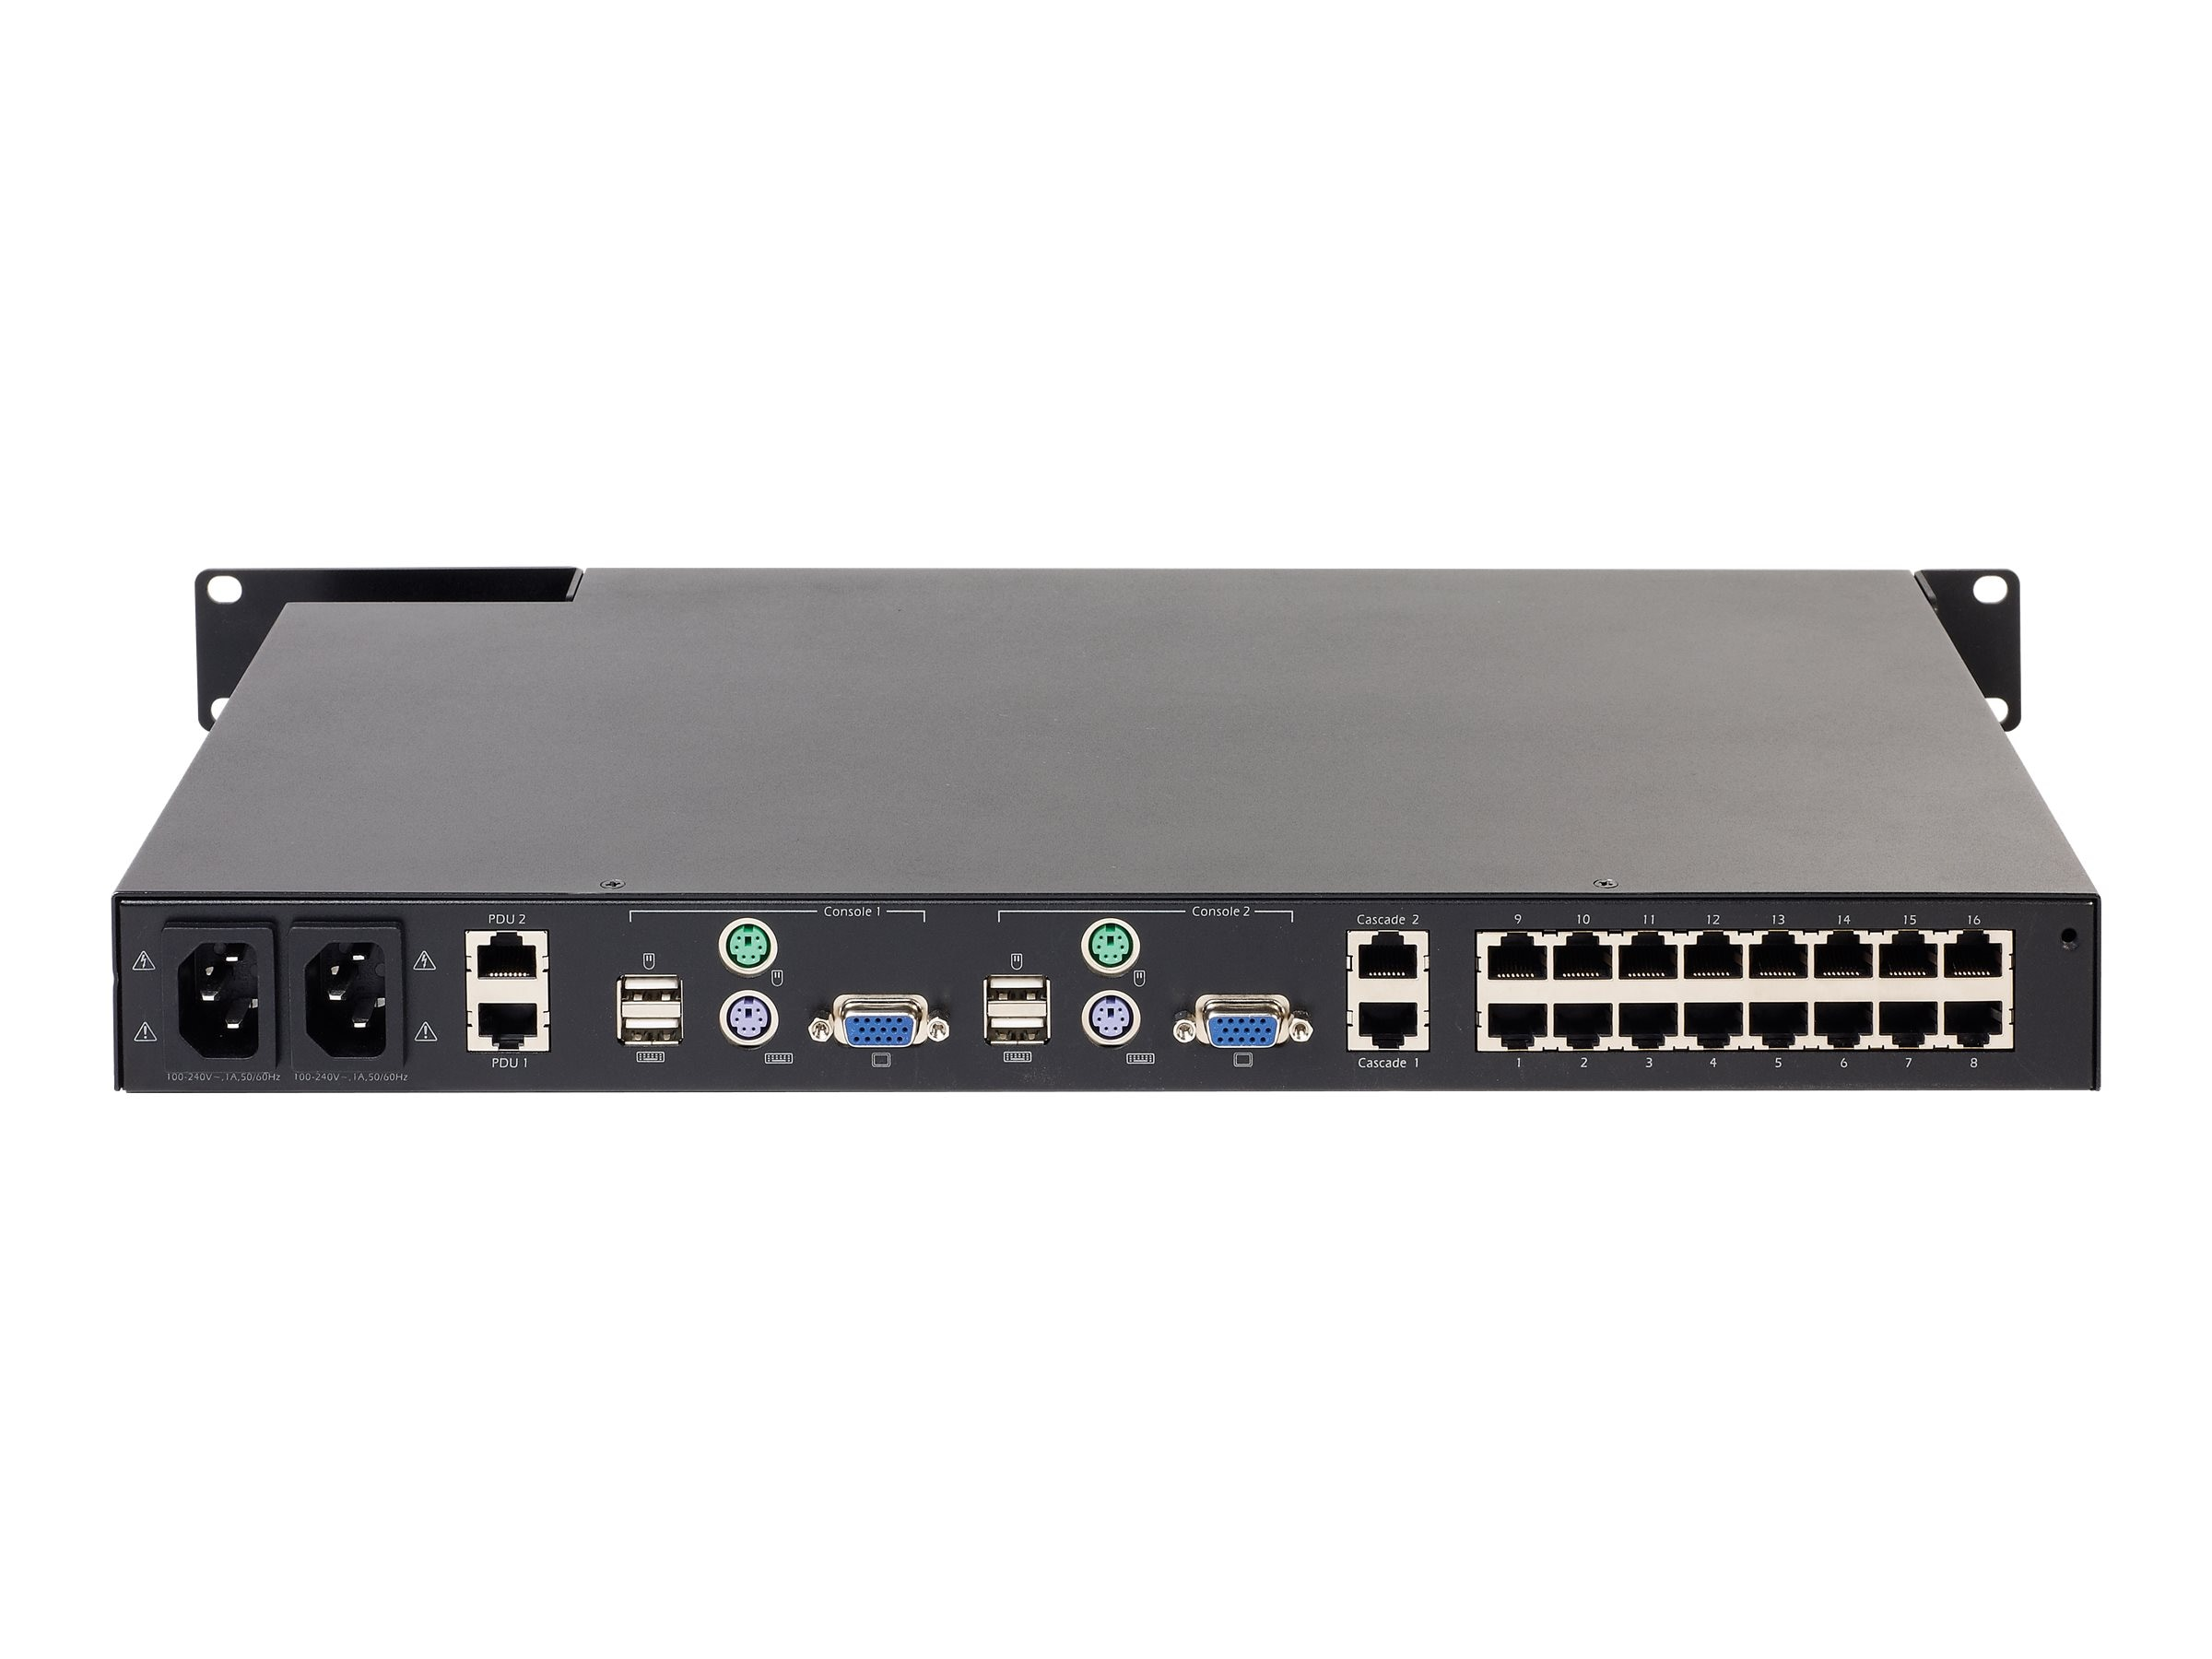 APC KVM 2G, Enterprise Analog, (2) Local Users, (16) Ports with Virtual Media, KVM0216A